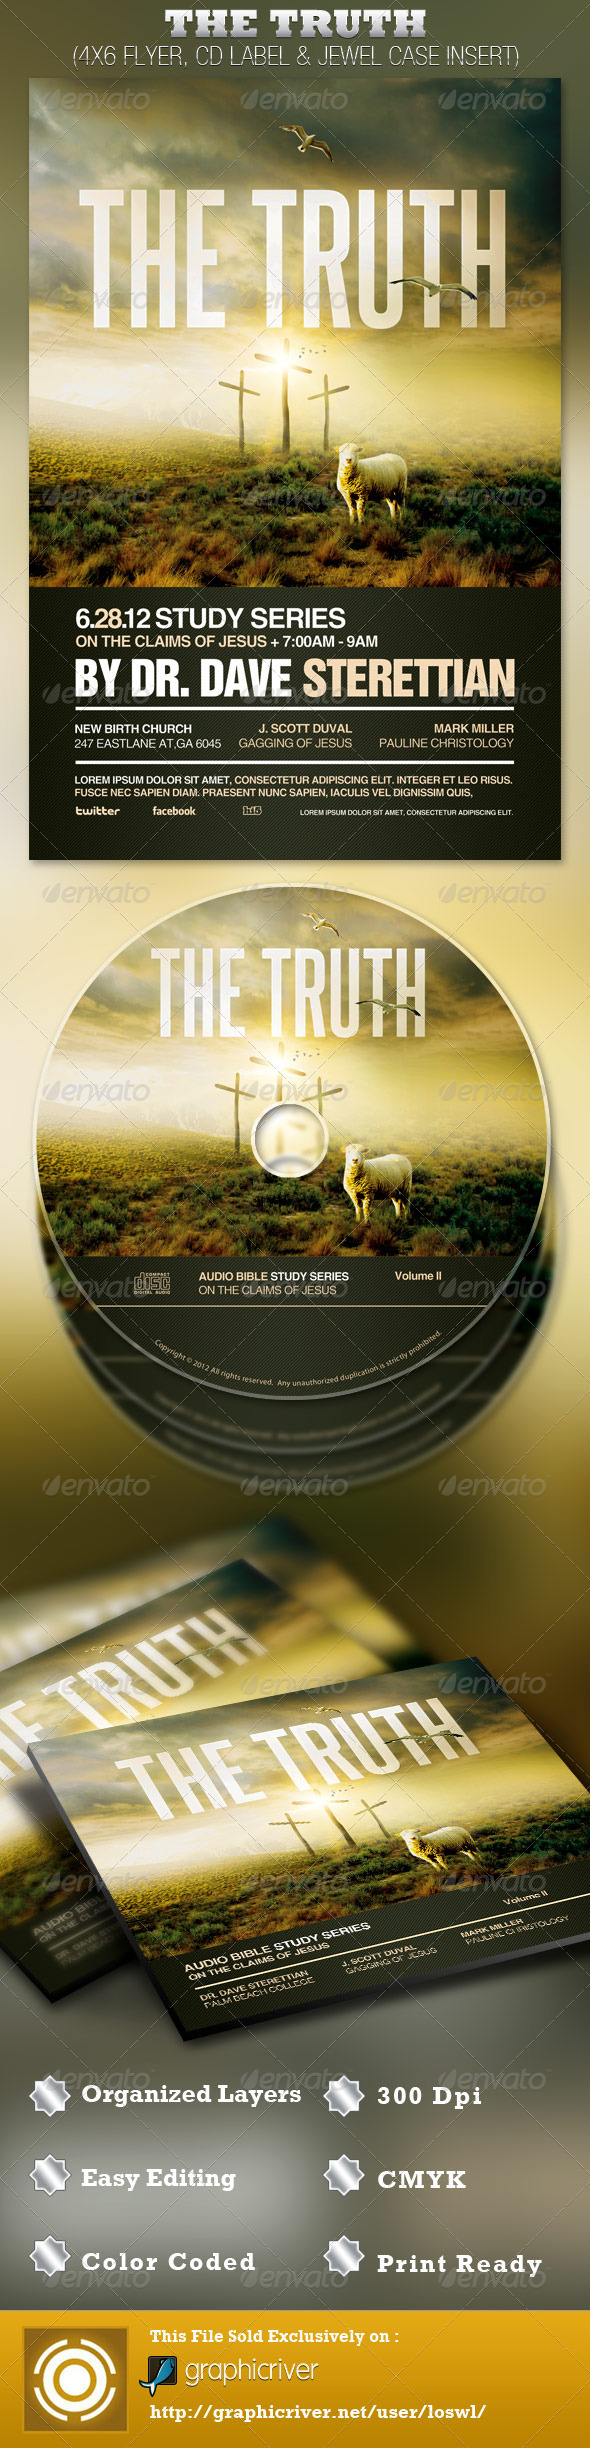 GraphicRiver The Truth Church Flyer and CD Template 2517231